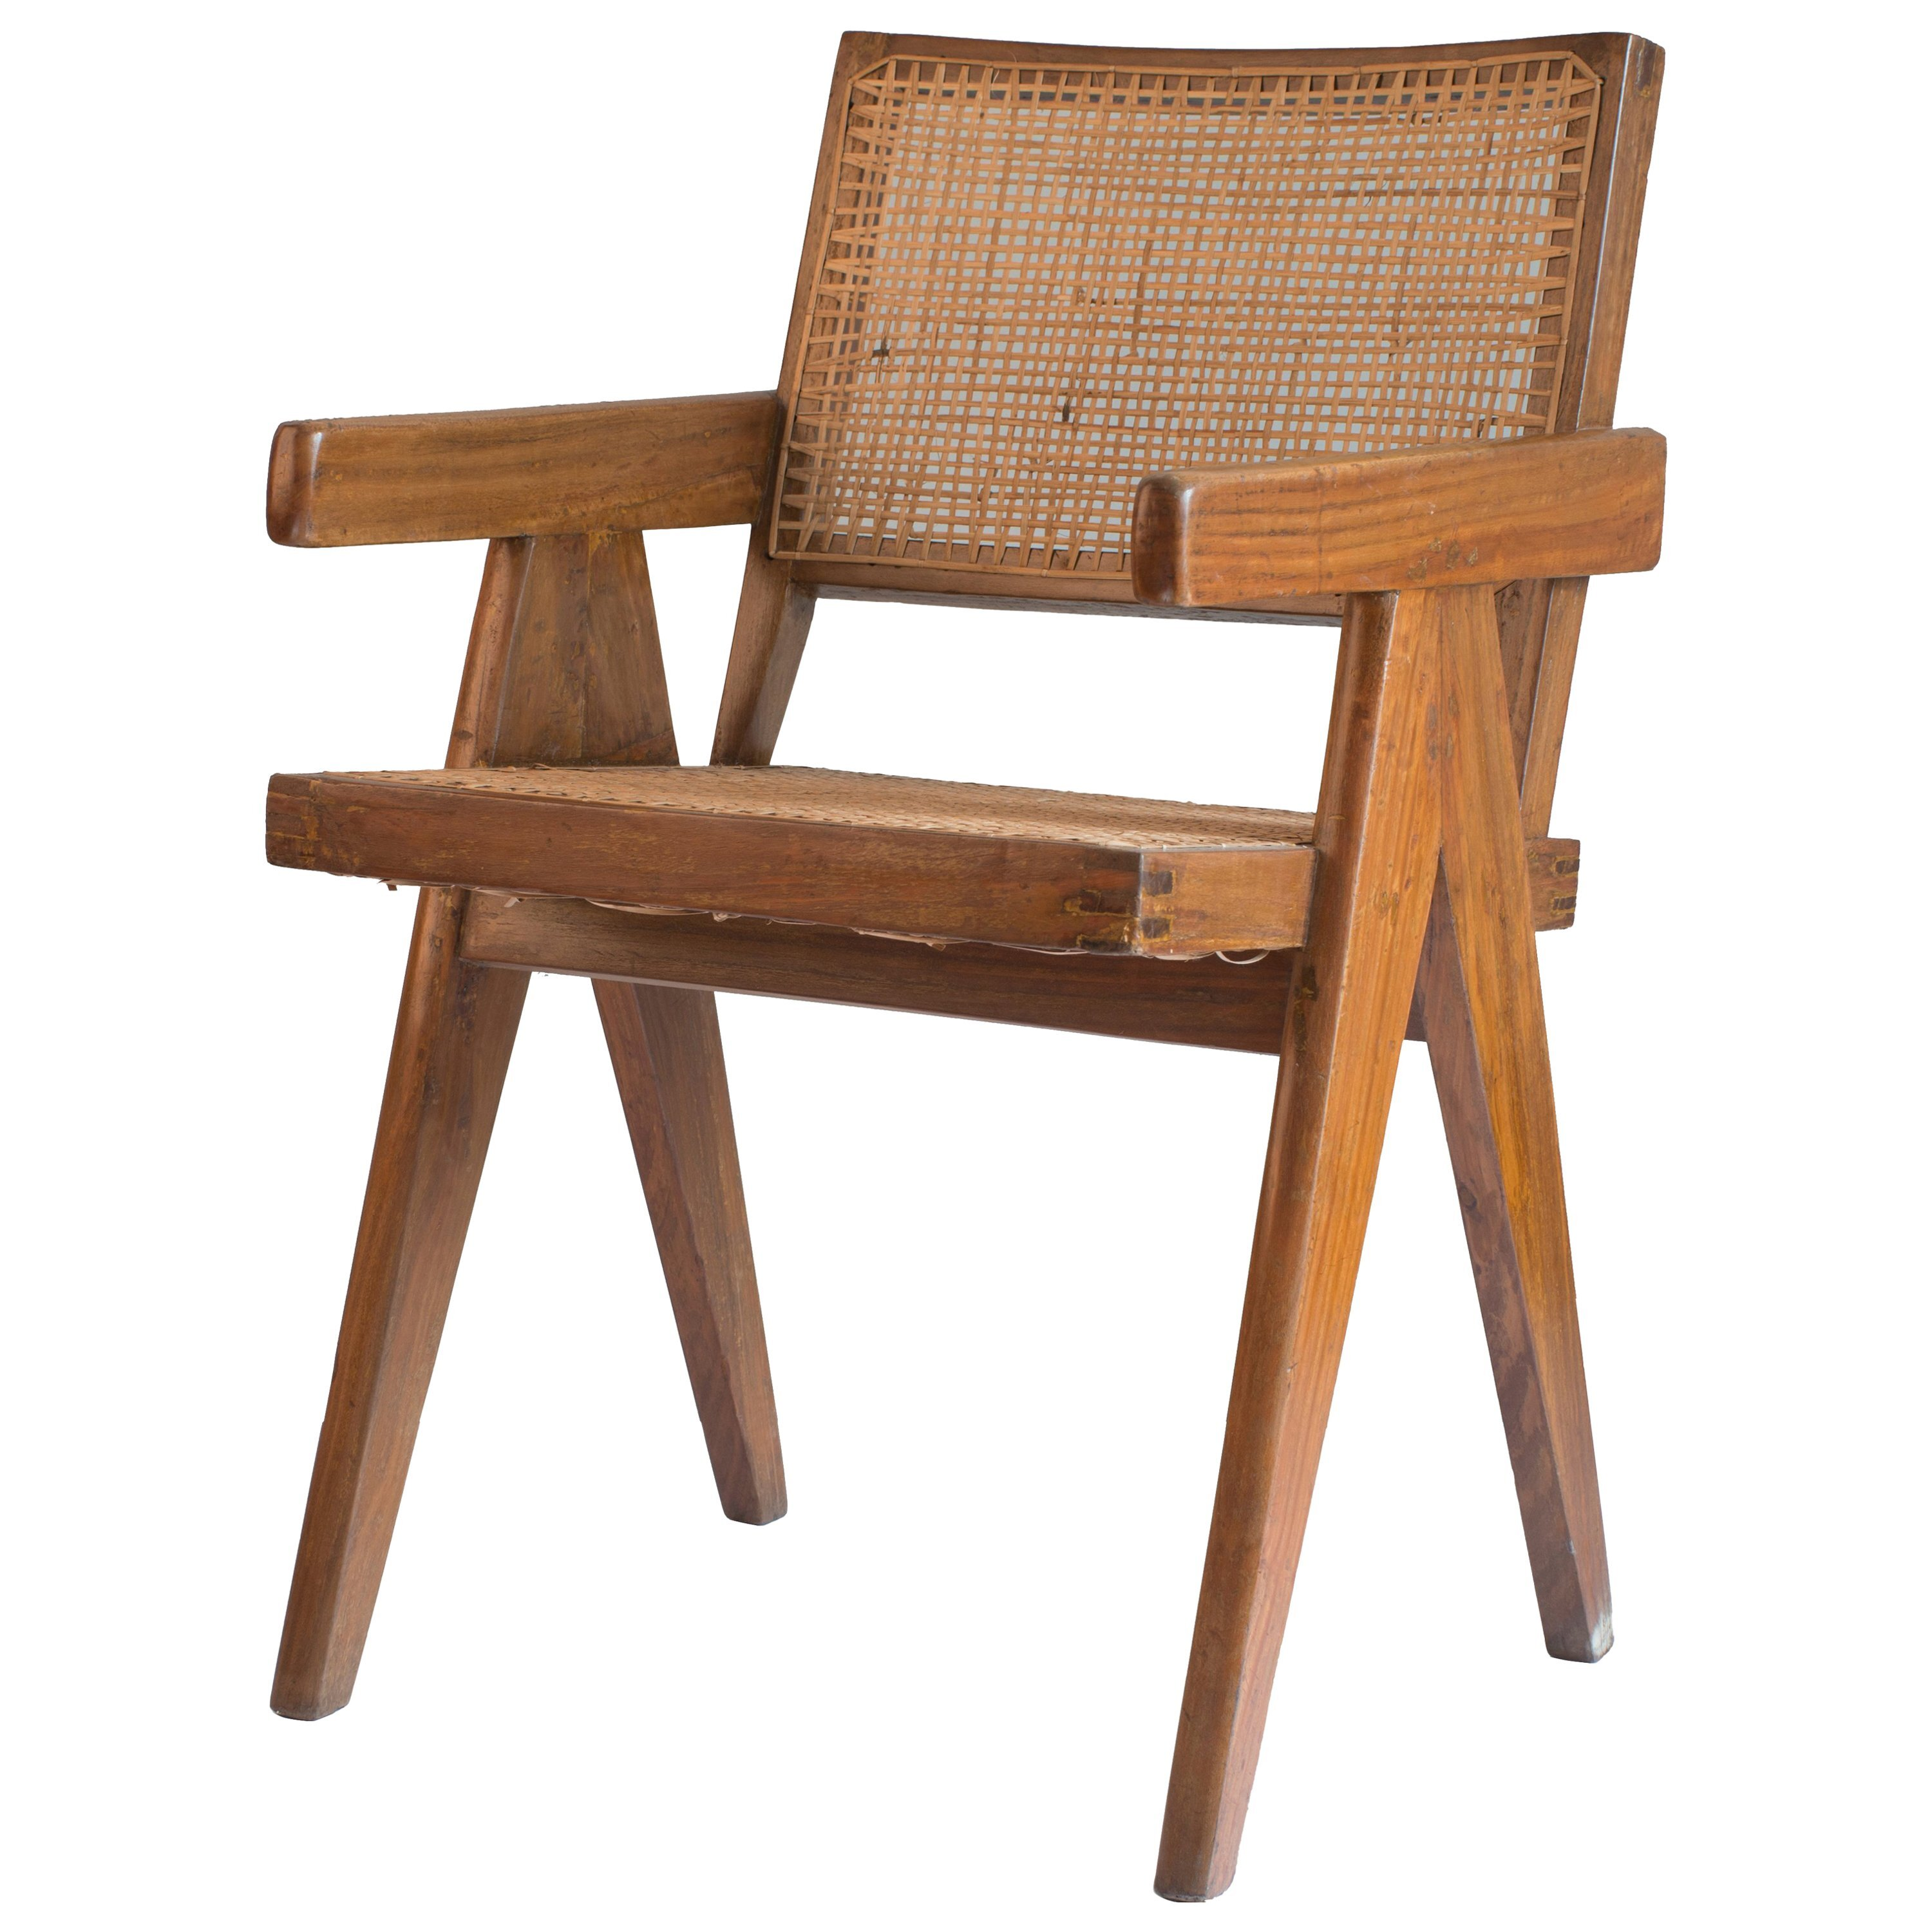 Vintage Lounge Stoel.This Woven Chair Is Taking The Design World By Storm Martha Stewart